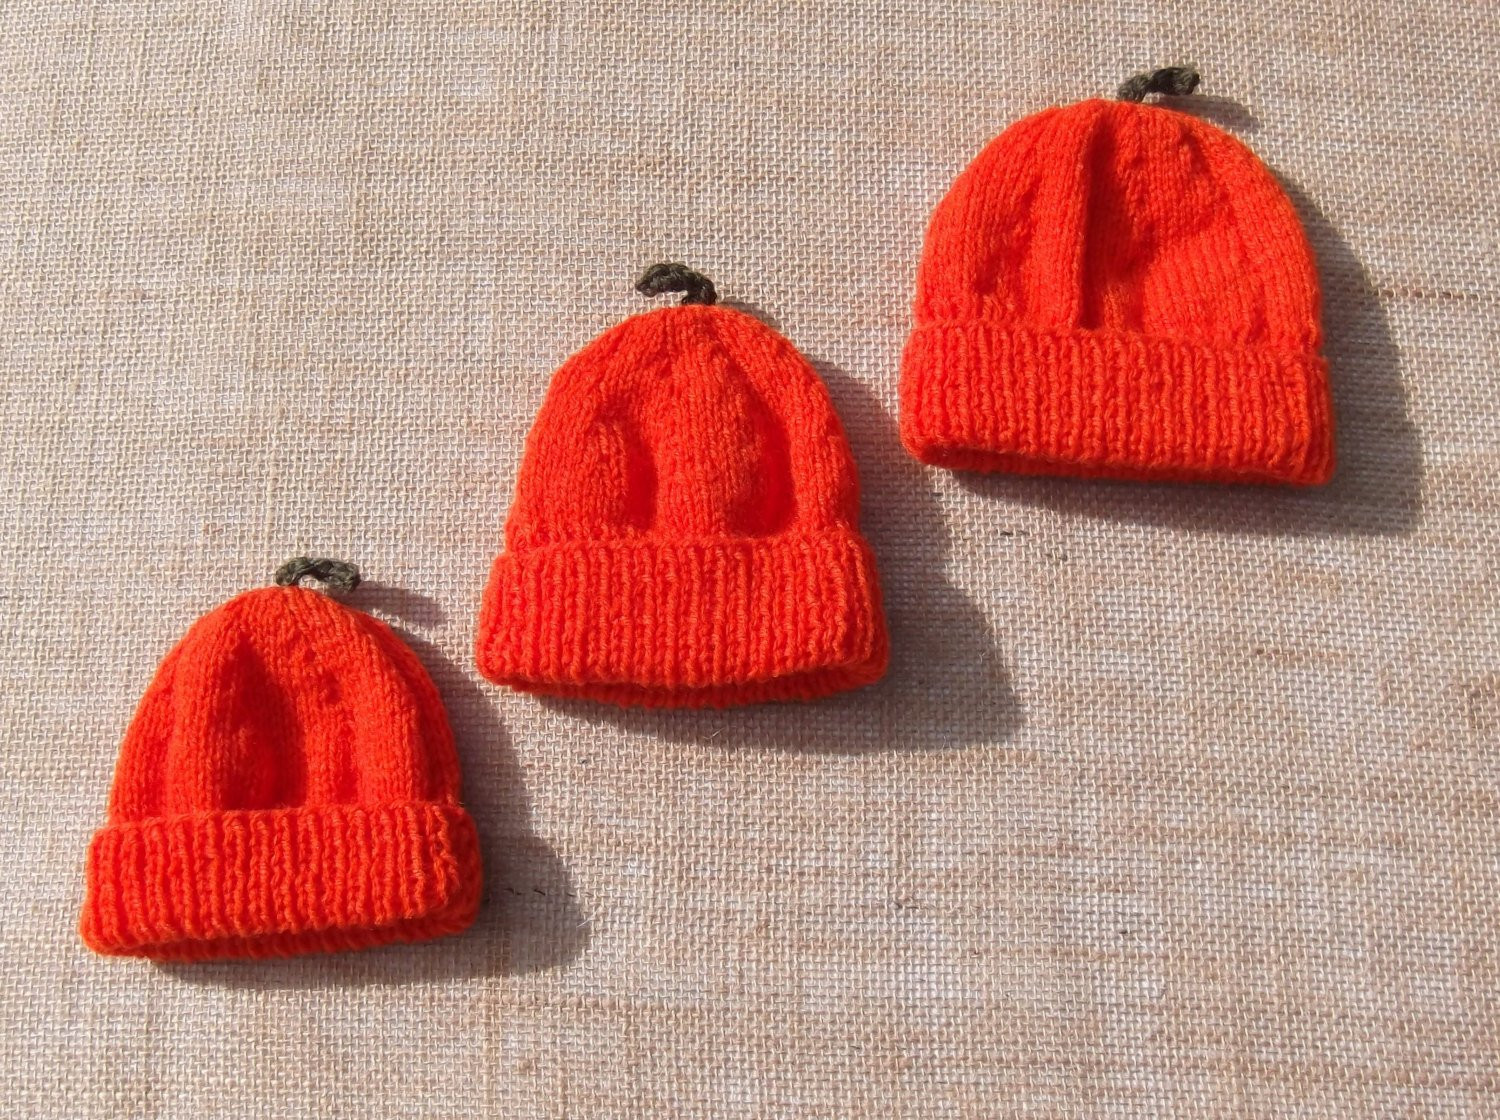 Best Of Hand Knitted New Baby Pumpkin Beanie Hat Thanks Giving Gift Knitted Pumpkin Hat Of Marvelous 40 Ideas Knitted Pumpkin Hat